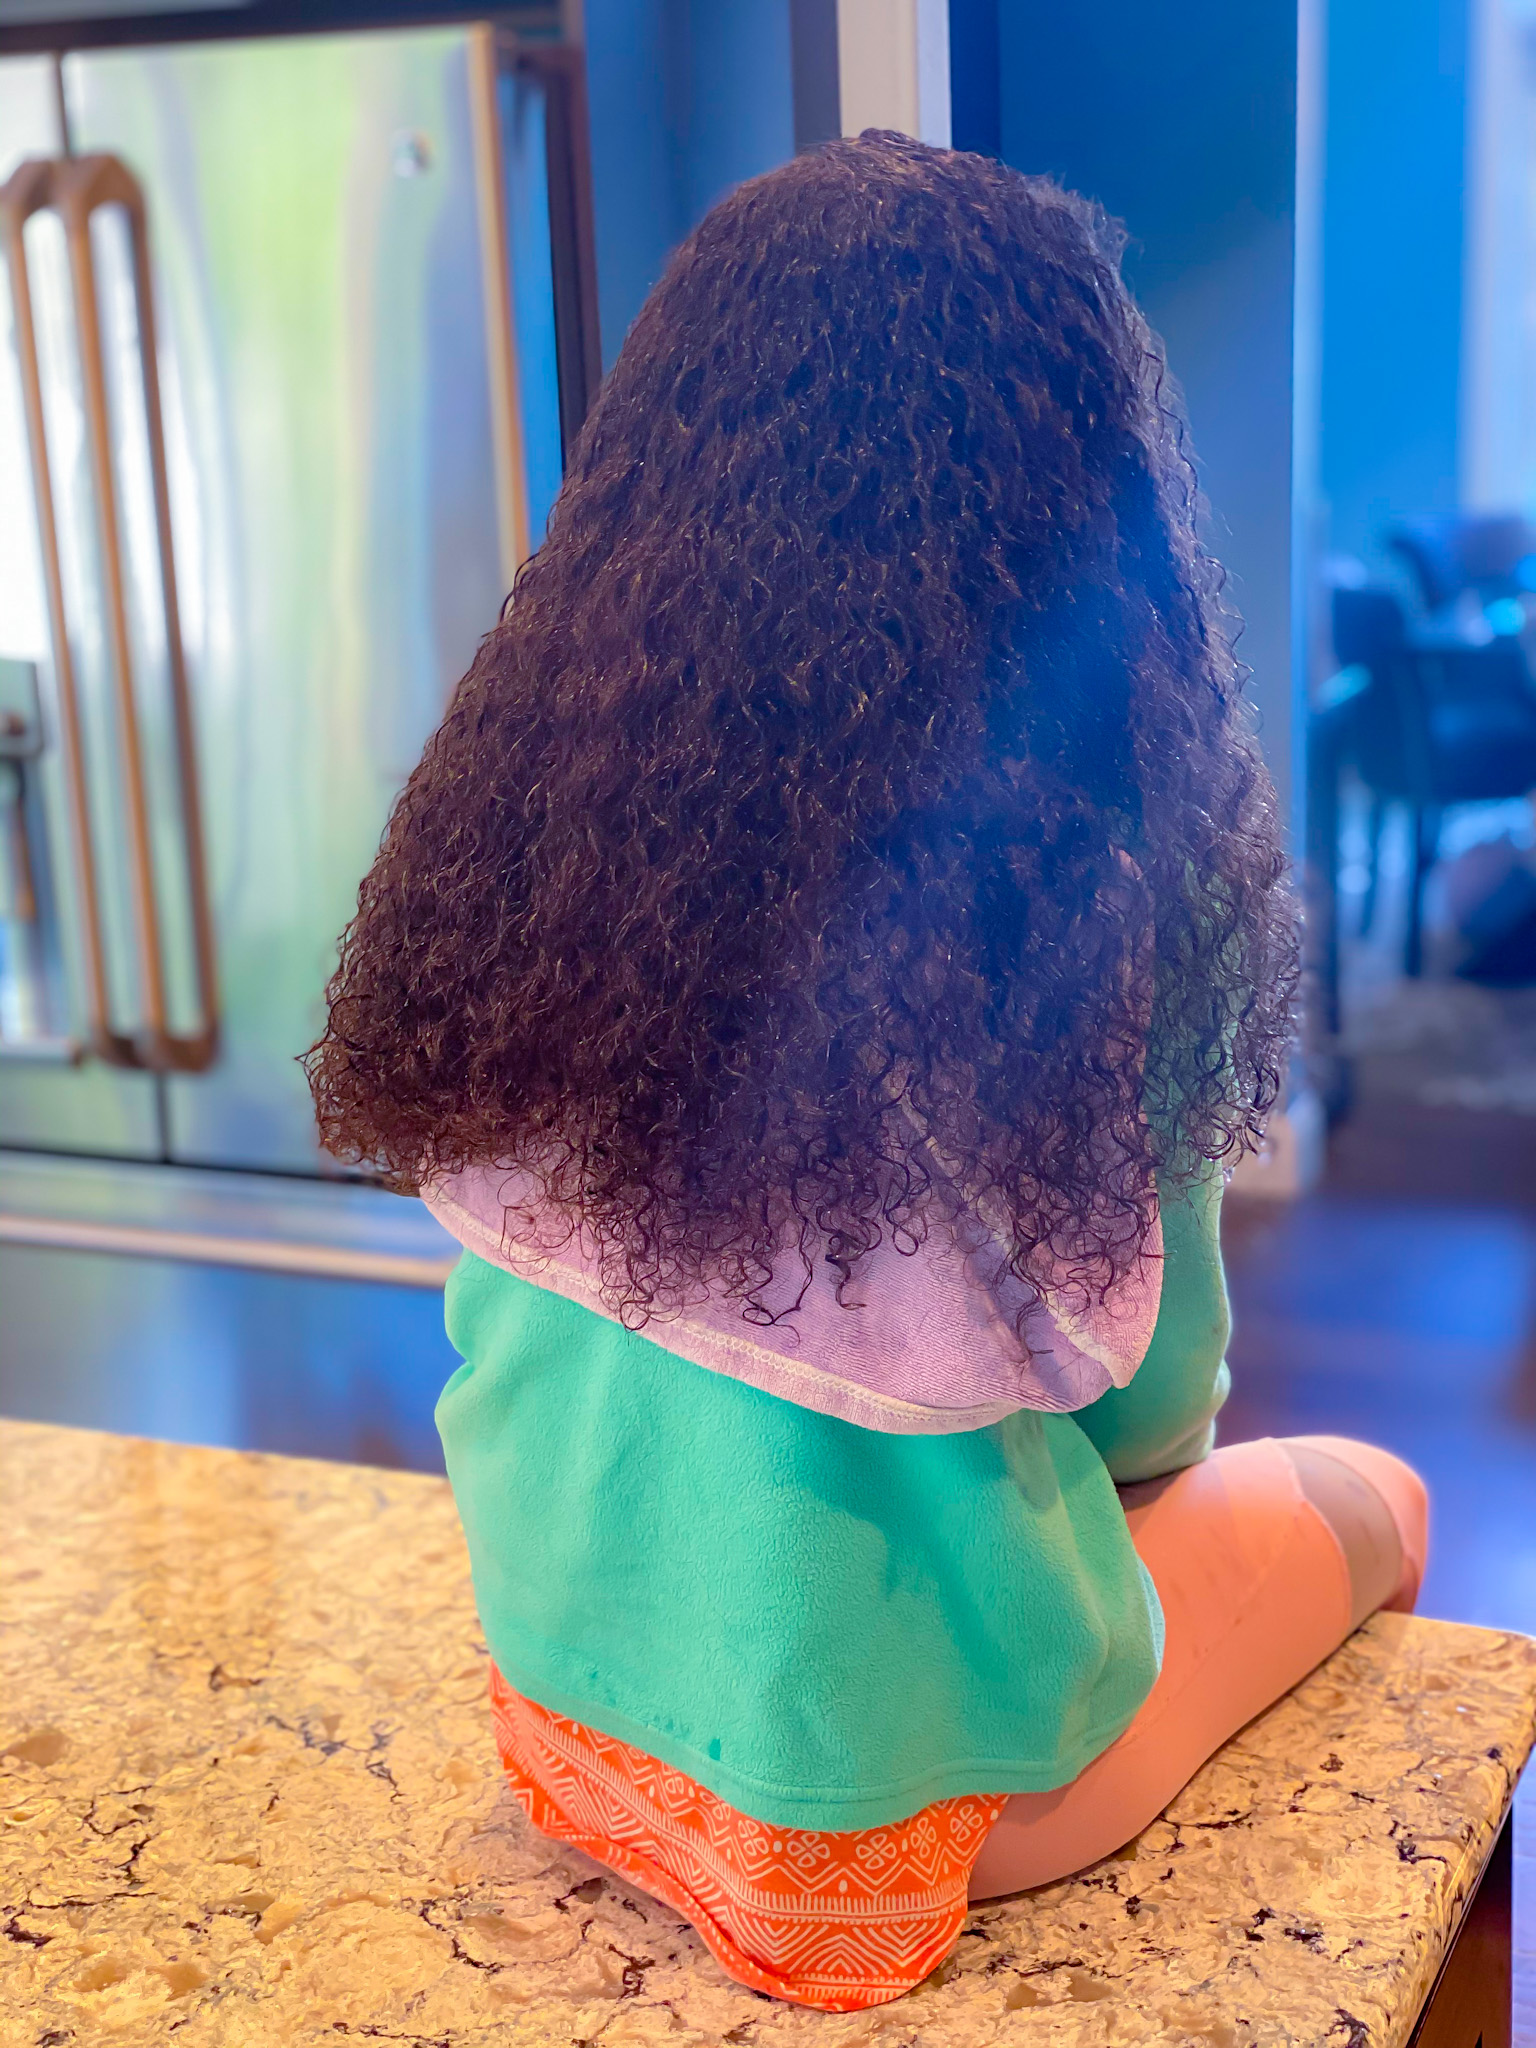 How to wash and condition curly hair kid's hair